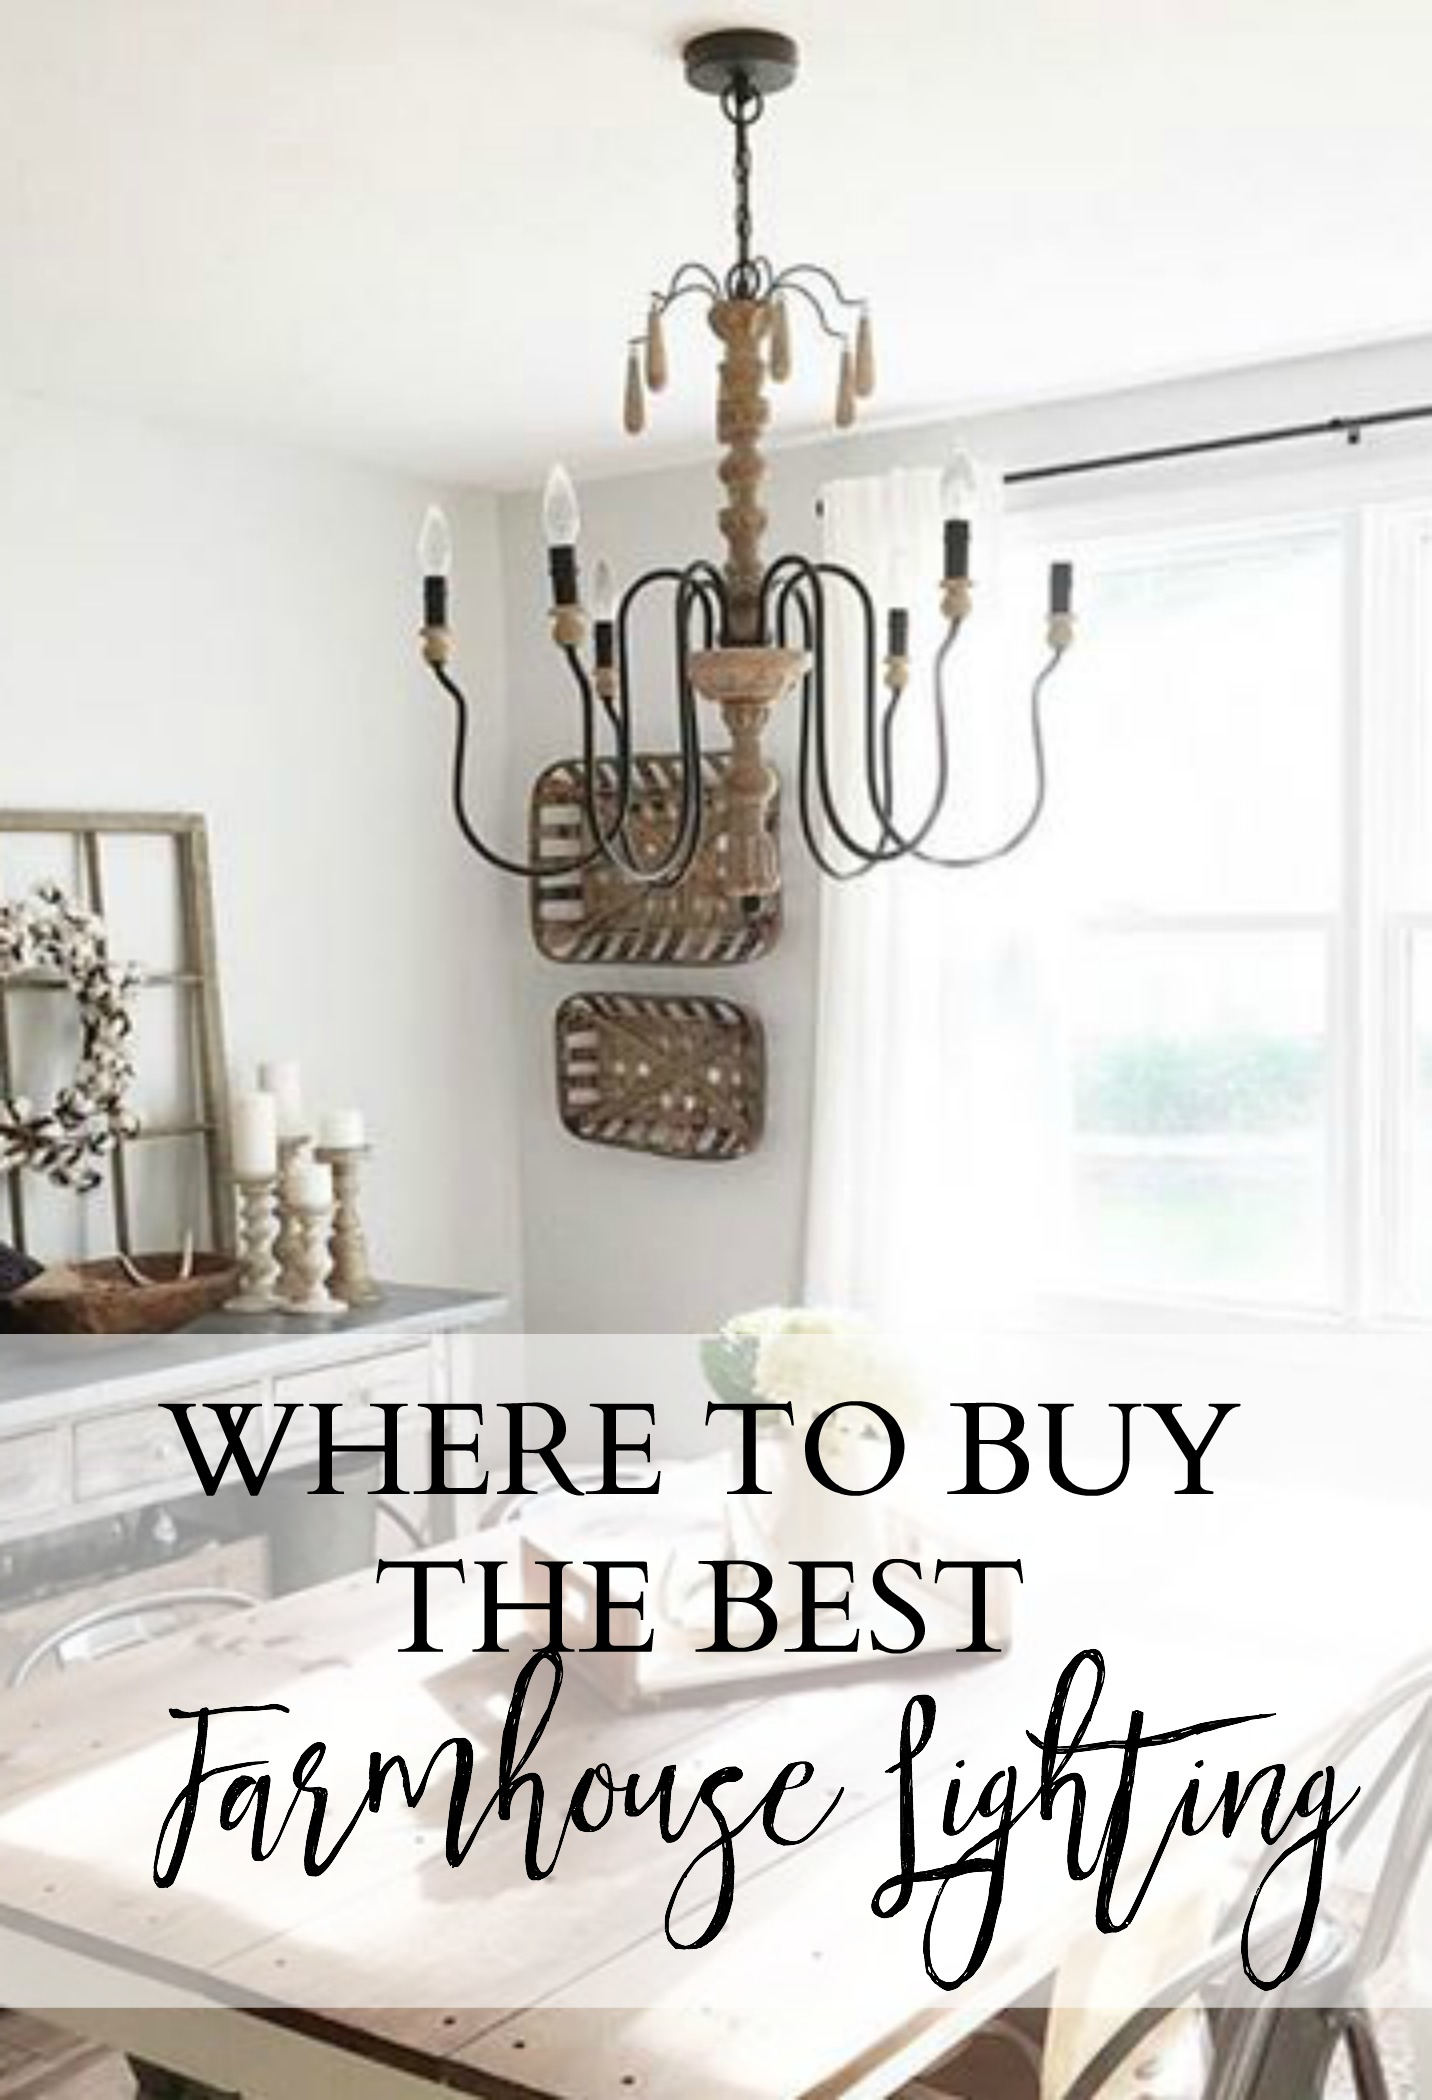 Home where to buy the best farmhouse lighting